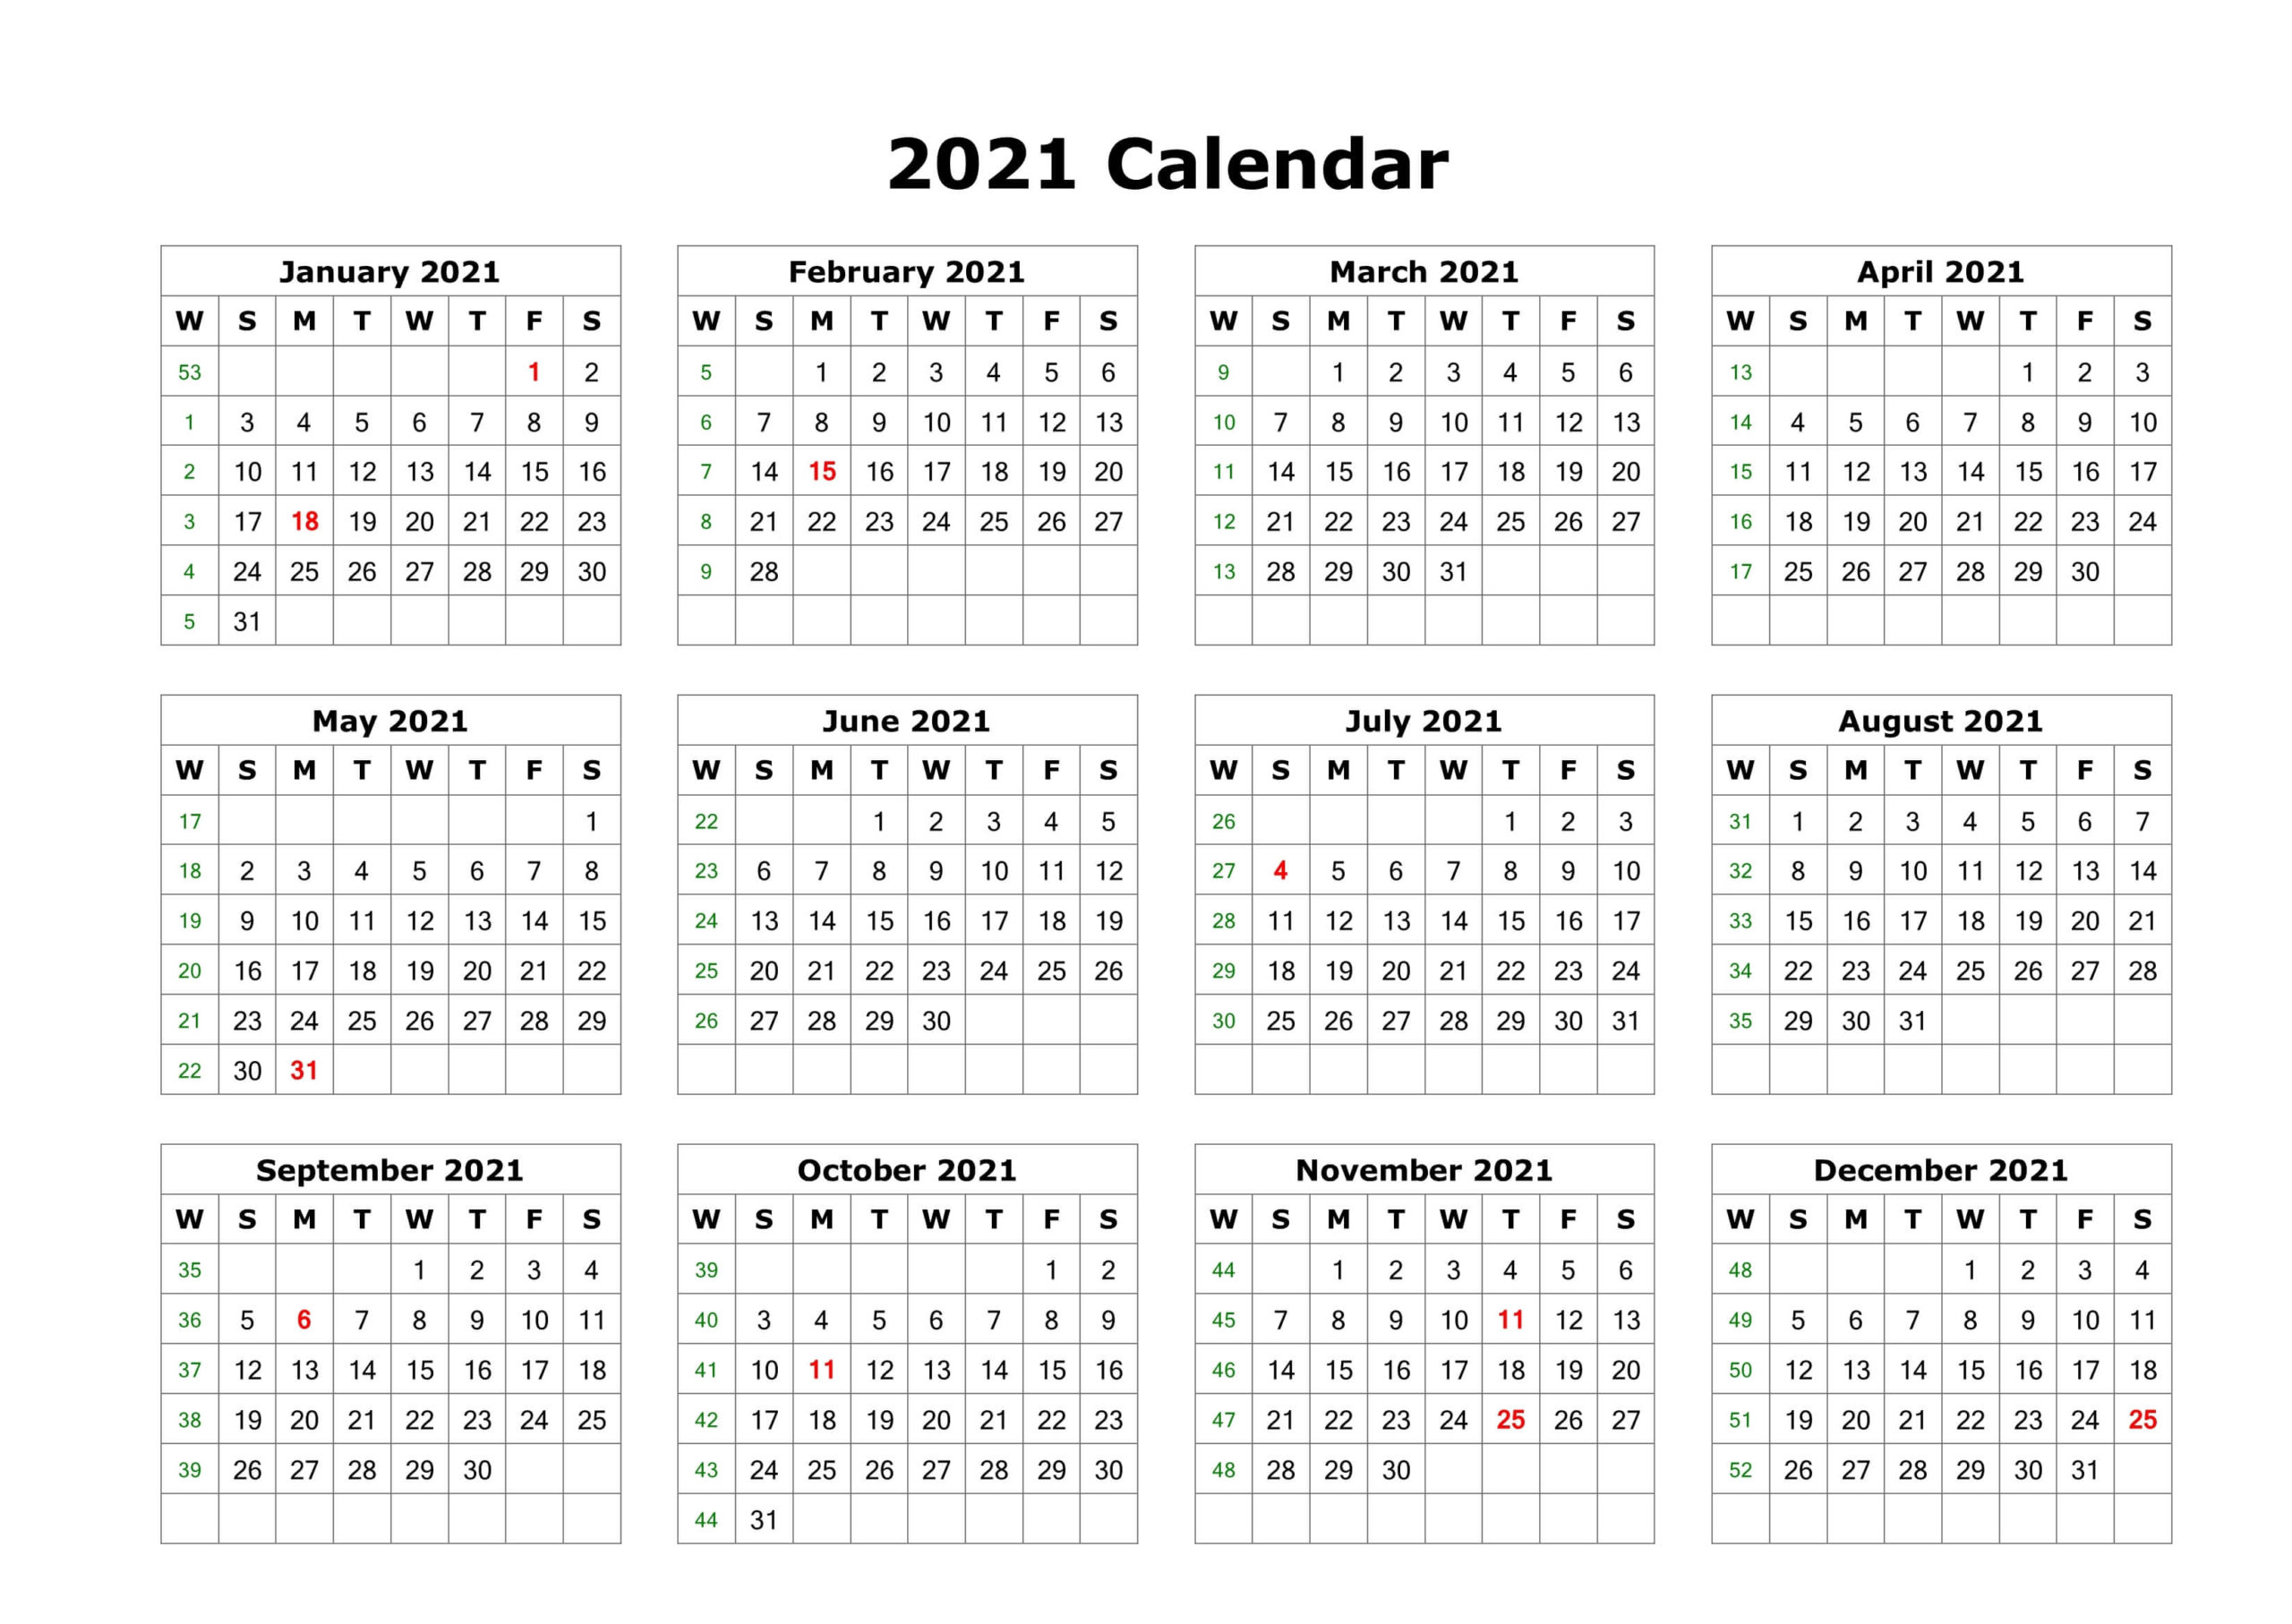 Yearly 2021 Calendar Blank Landscape to Print